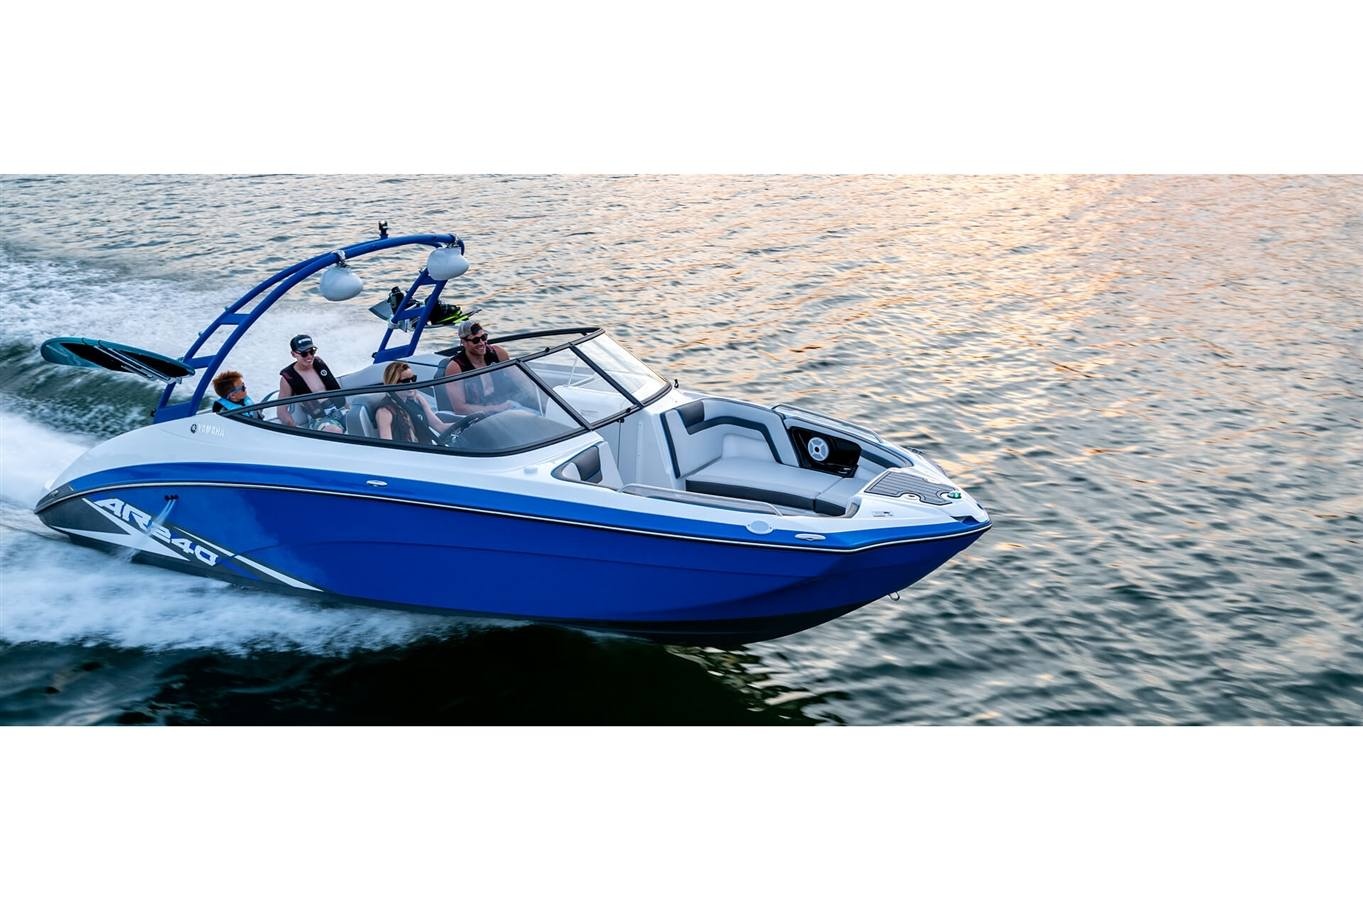 yamaha jet boat dual battery wiring diagram 2020 yamaha ar240 for sale in rockledge  fl boaters exchange  2020 yamaha ar240 for sale in rockledge